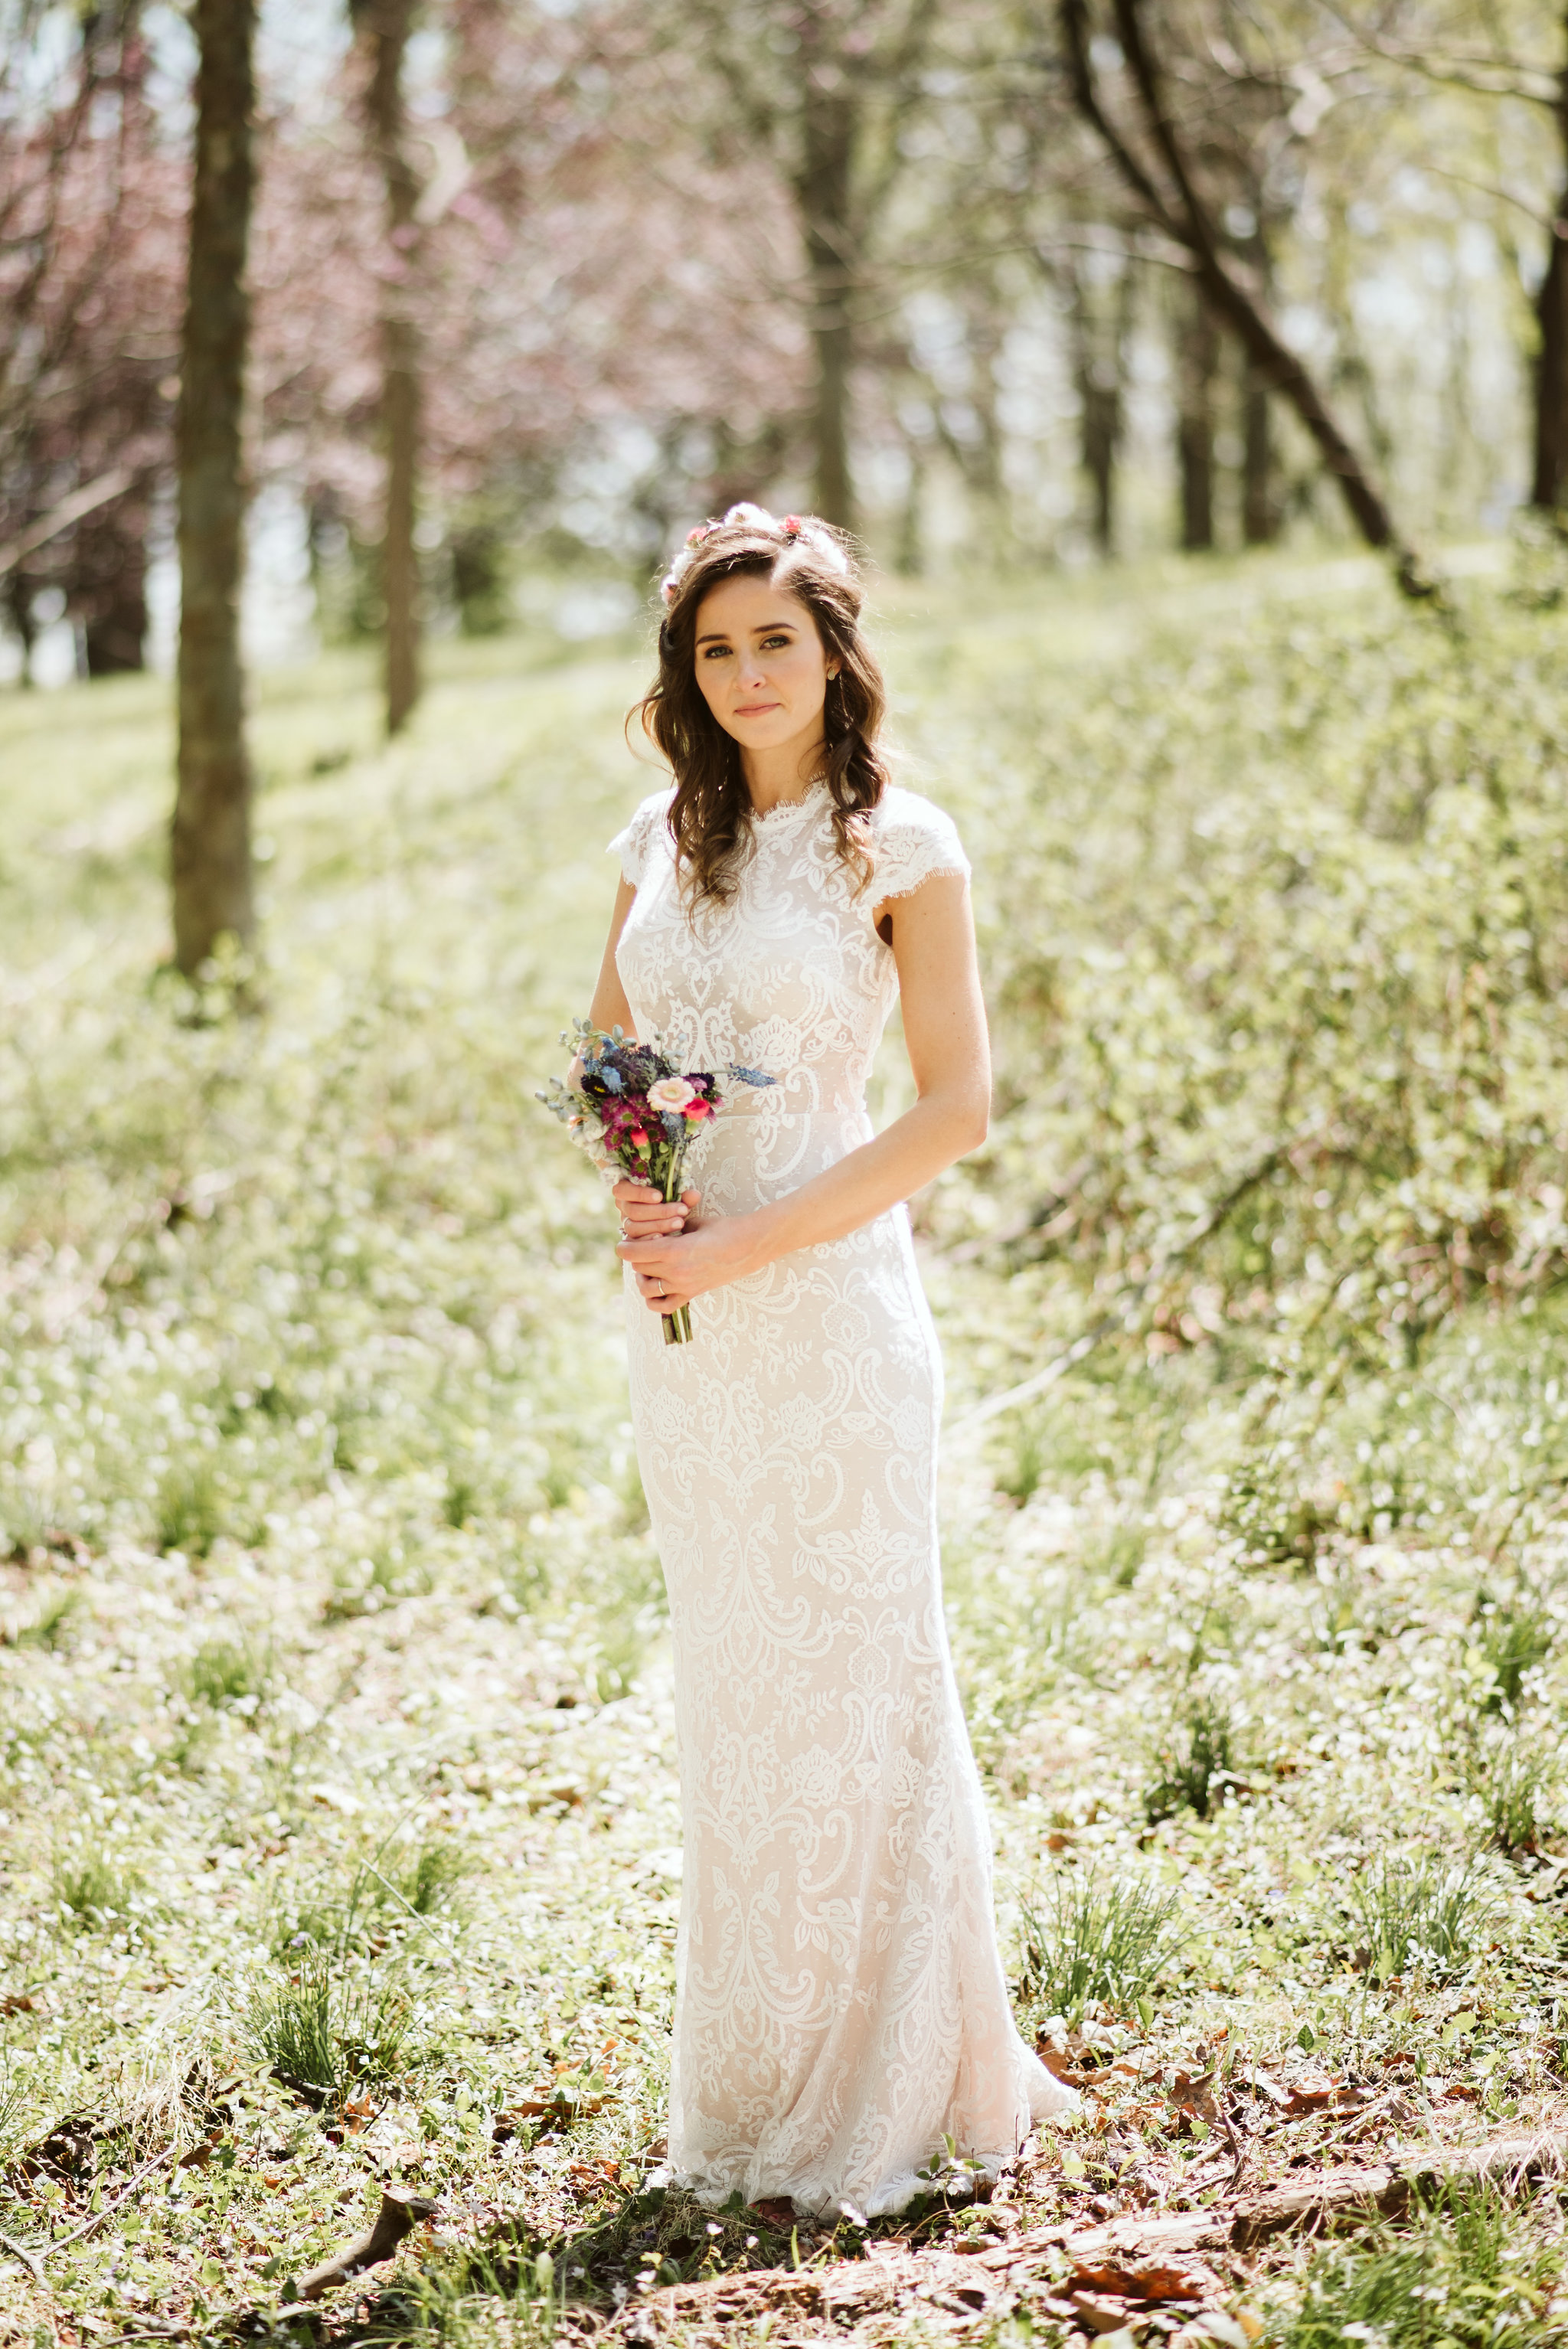 Spring Outdoor Wedding, Park, Baltimore Wedding Photographer, DIY, Classic, Upcycled, Garden Party, Romantic, Portrait of Bride Outside, BHLDN Dress, Glamsquad Hair, Wildflowers